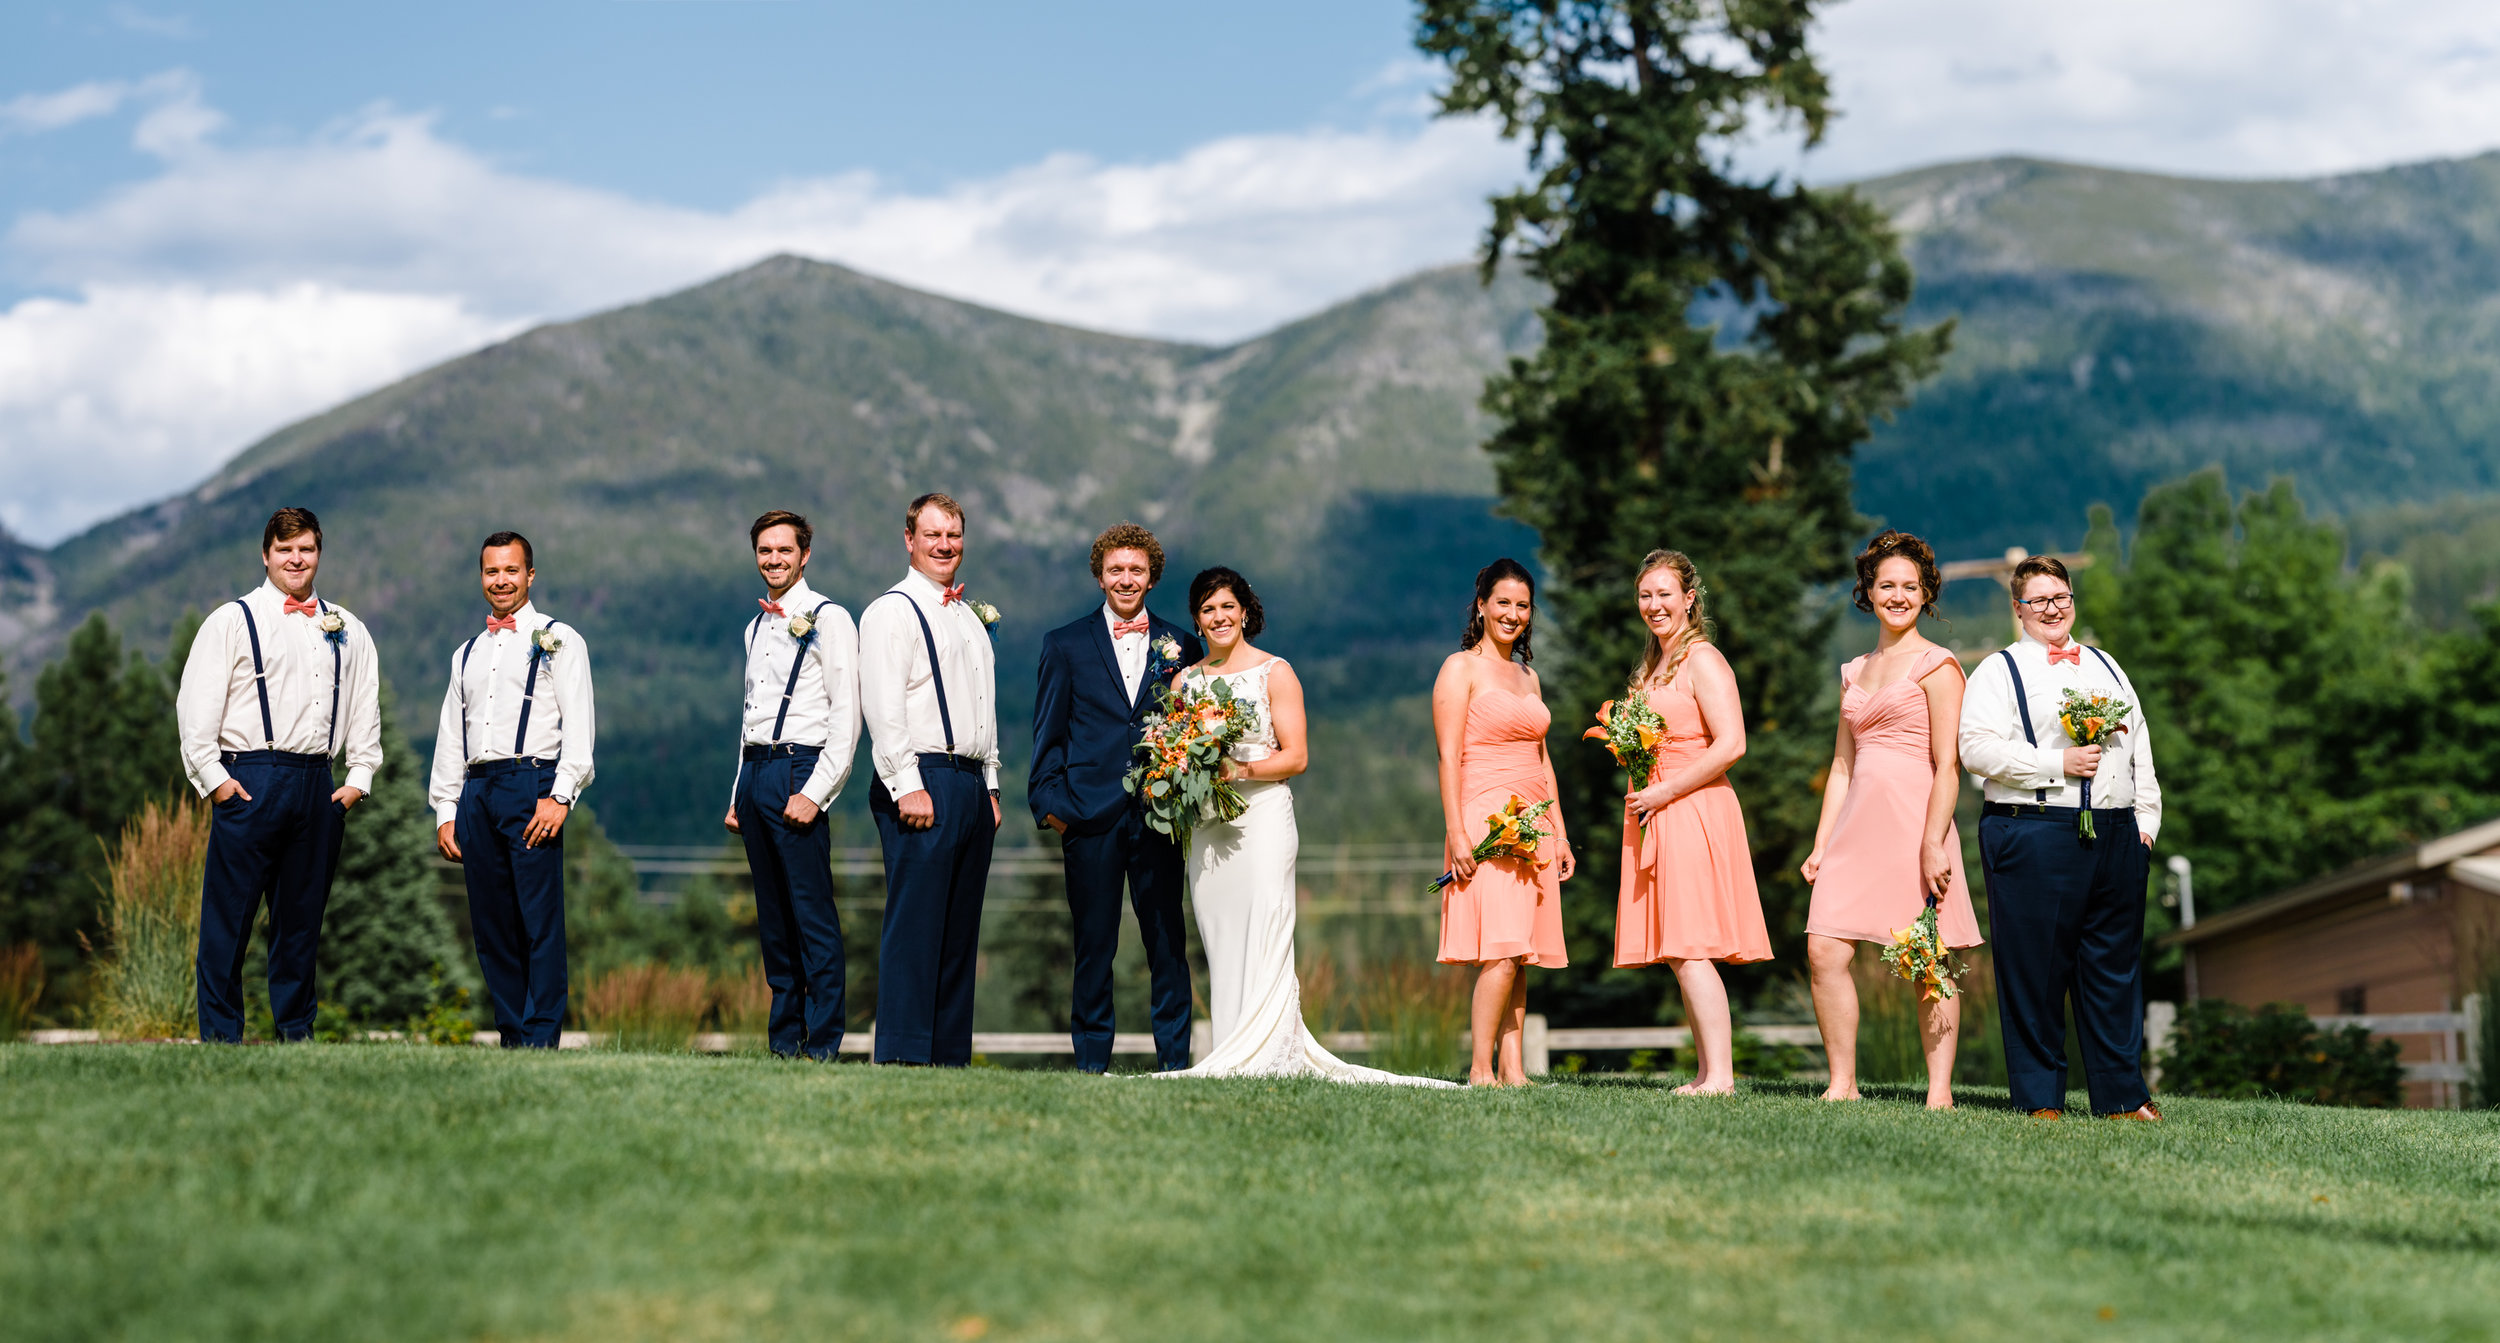 005The Barn at Finley Point Wedding_Montana Wedding Photographer_Katy & Bryce_July 20, 2019-433-Pano.jpg